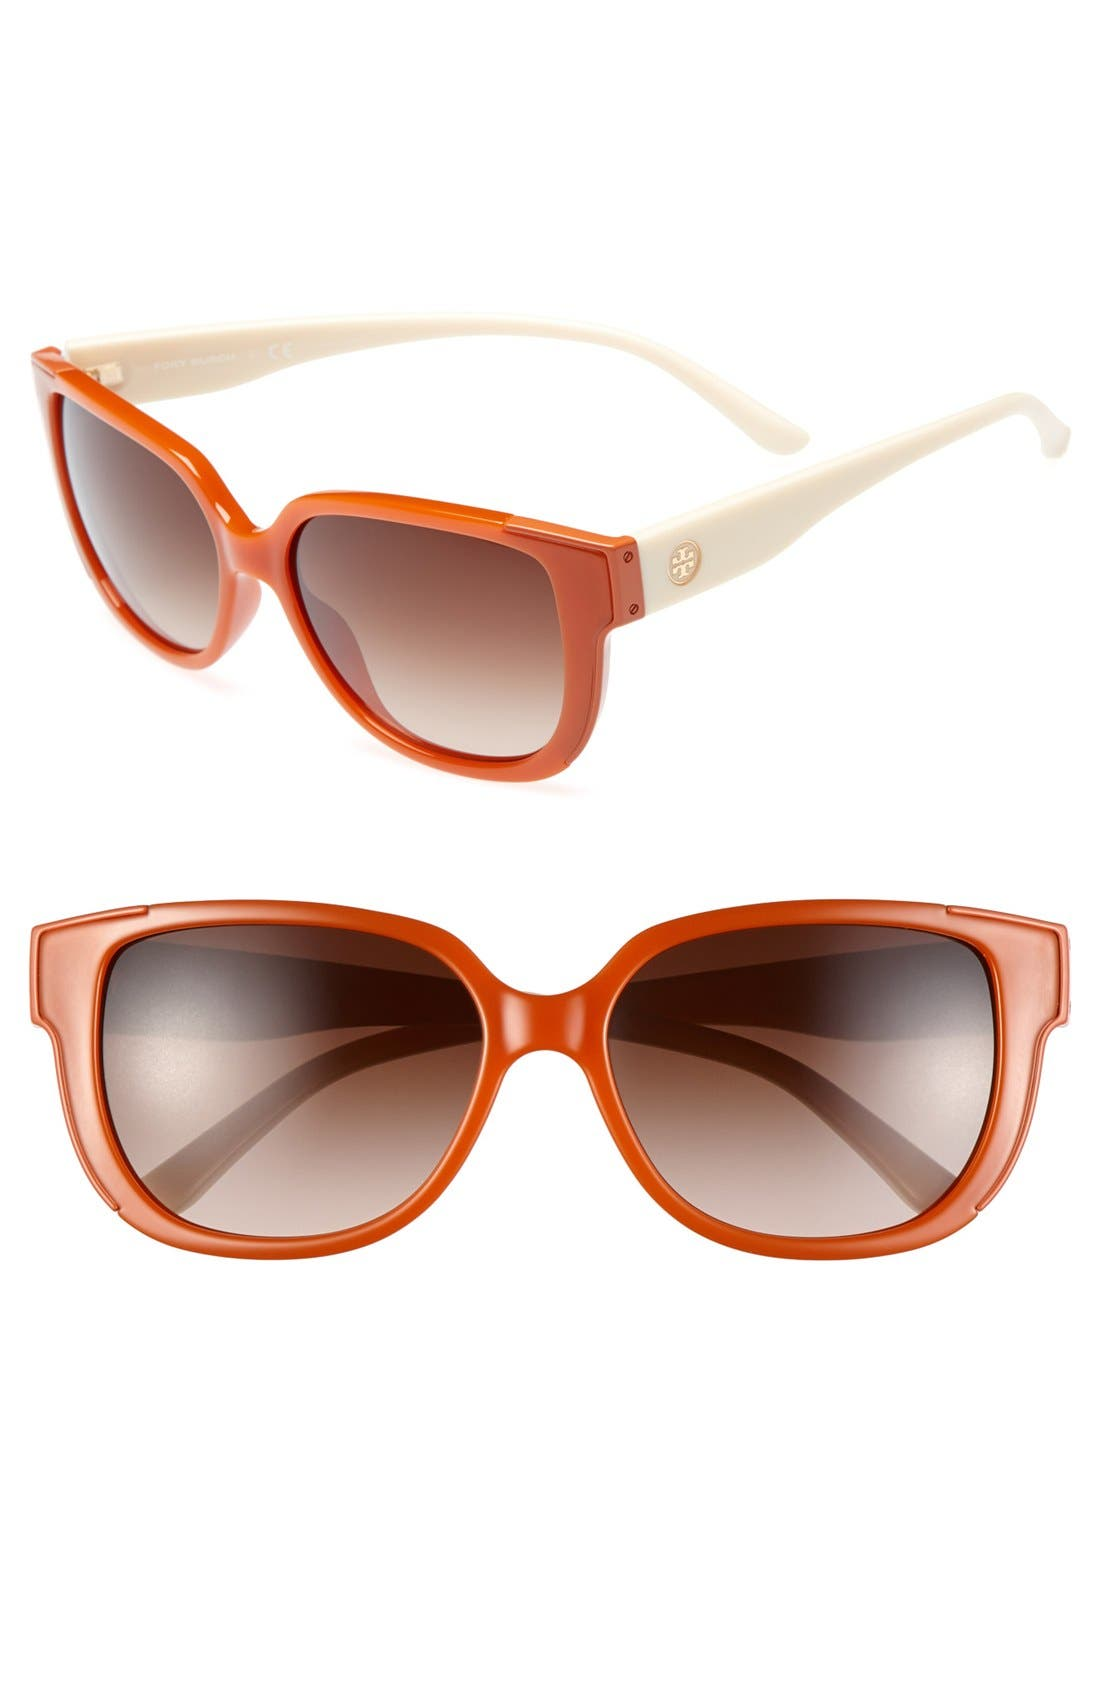 Main Image - Tory Burch 57mm Square Logo Sunglasses